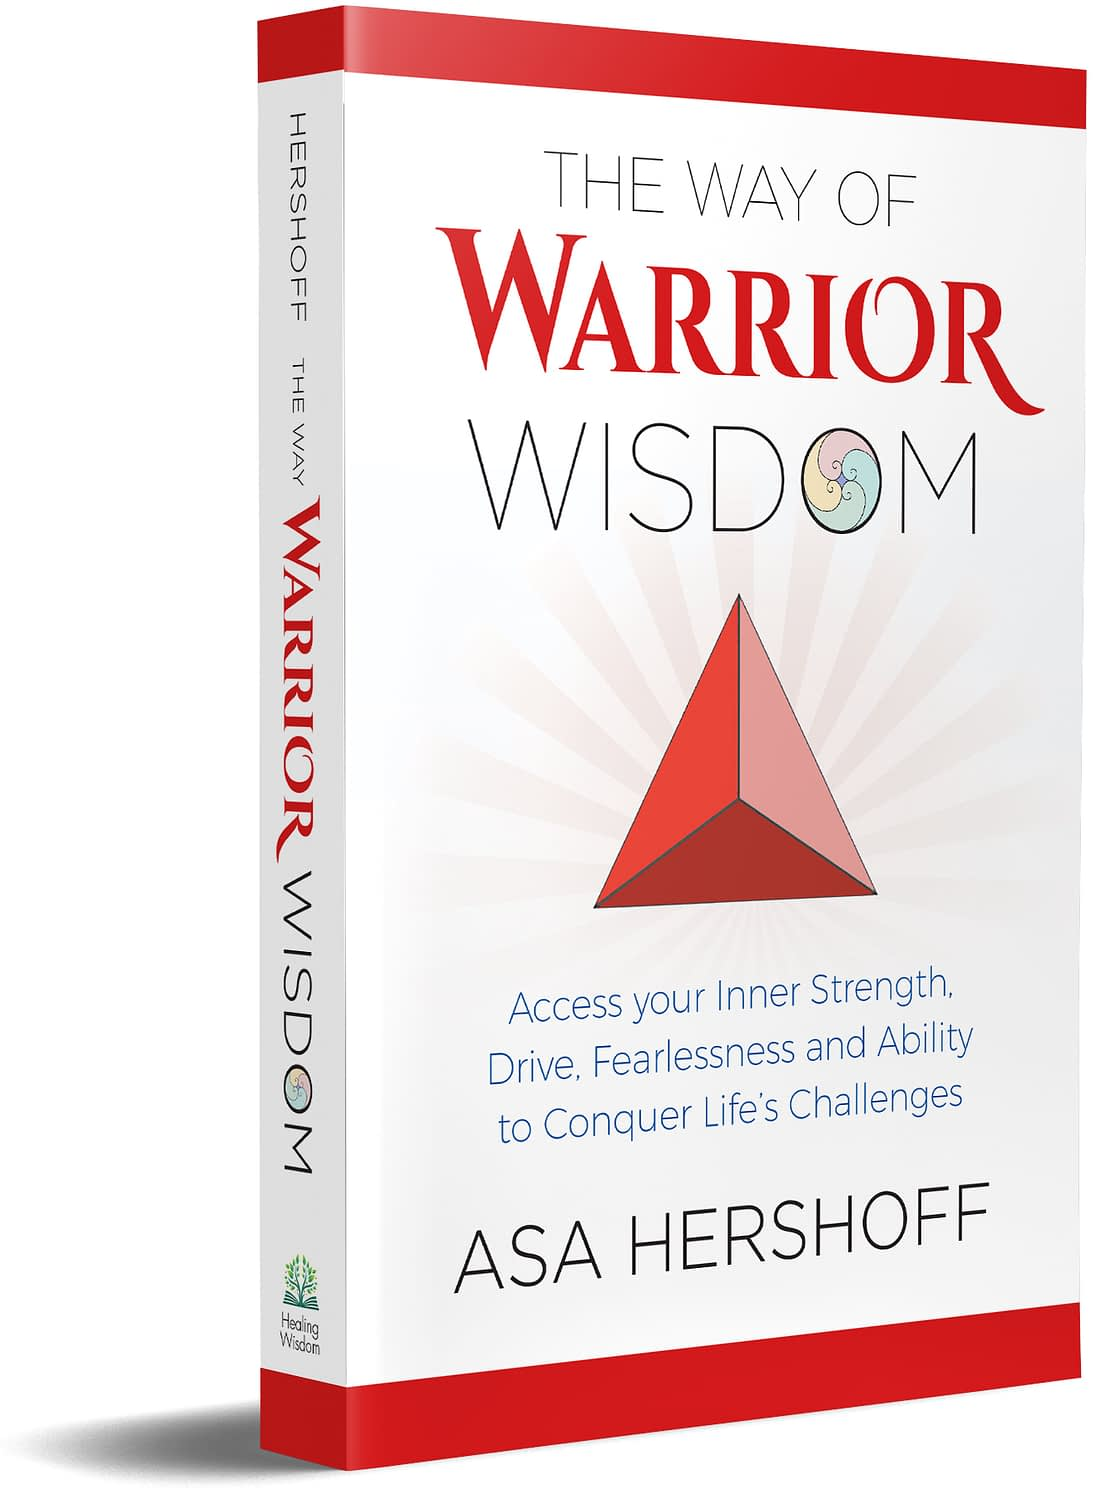 Way of Warrior Wisdom